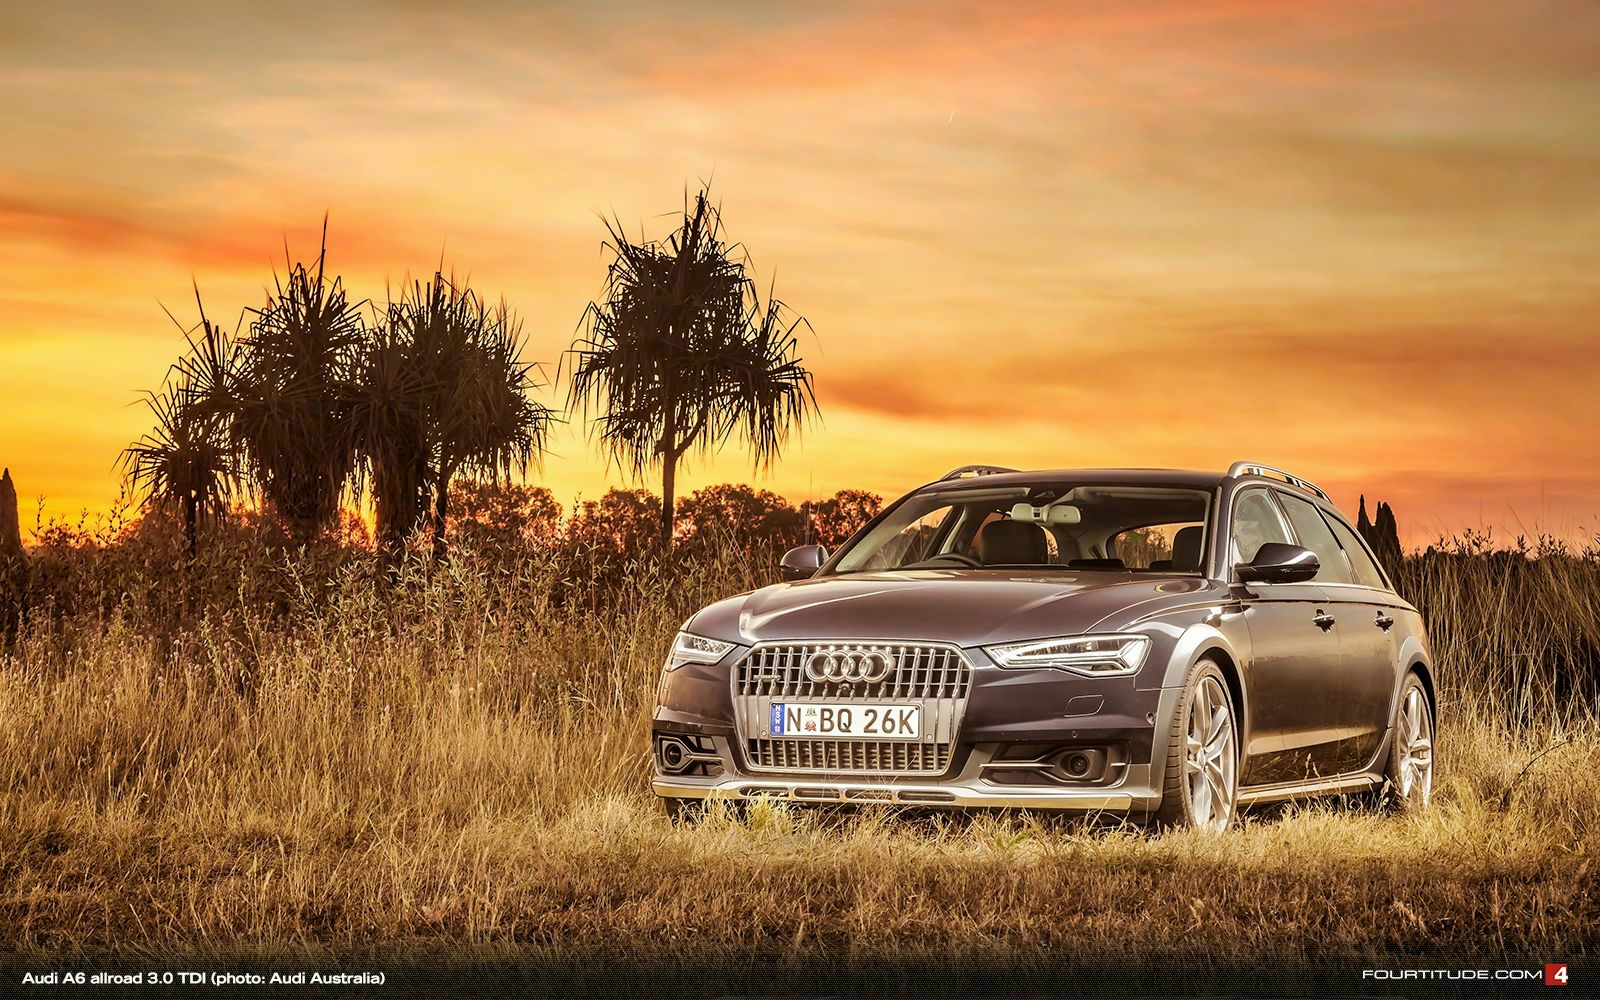 Audi A6 Allroad Hd Wallpapers Background Images Photos